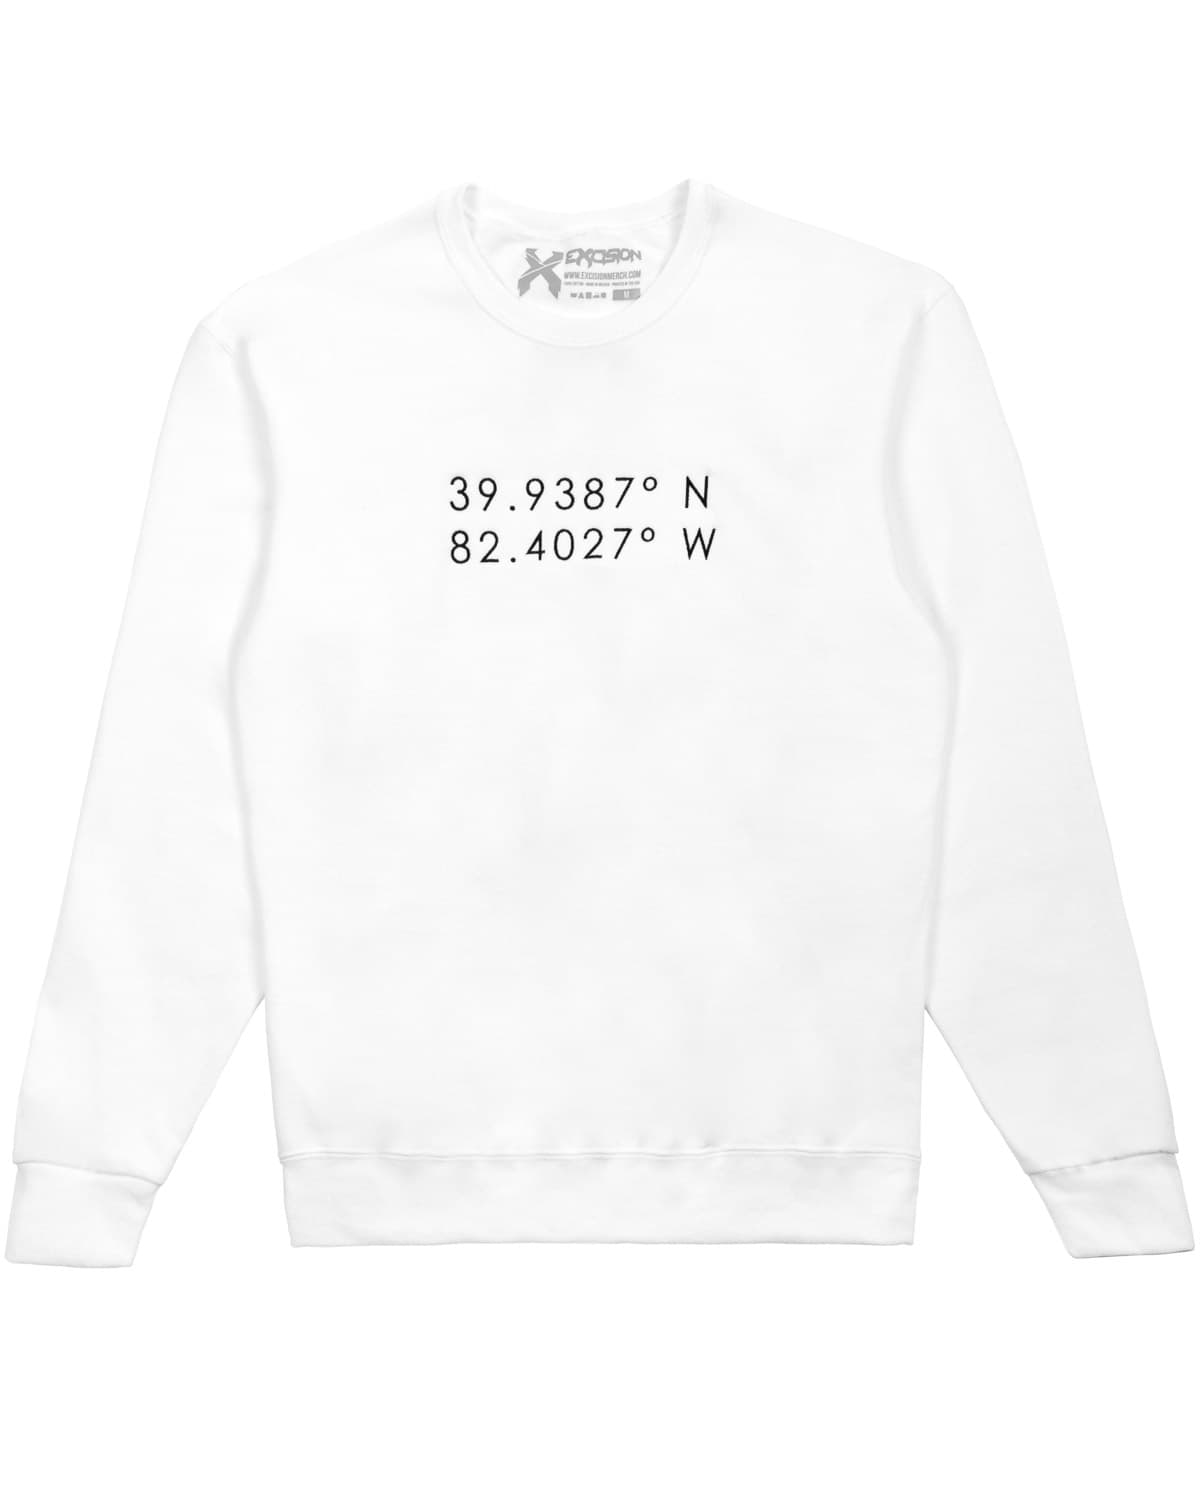 Lost Lands ' Coordinates' Embroidered Crewneck Sweatshirt - White